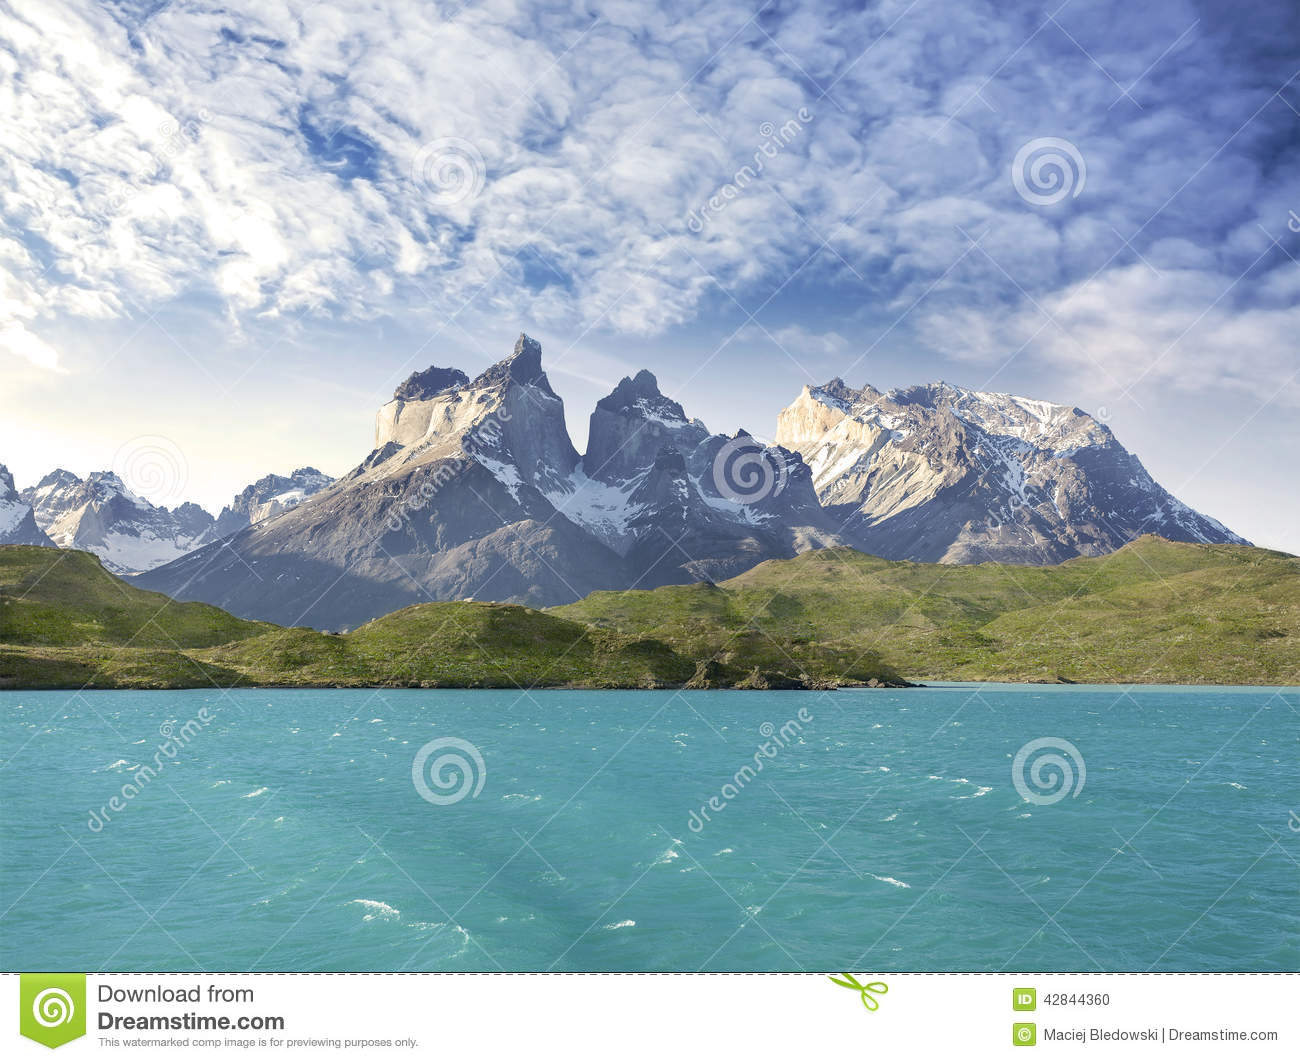 Pehoe mountain lake and Los Cuernos.